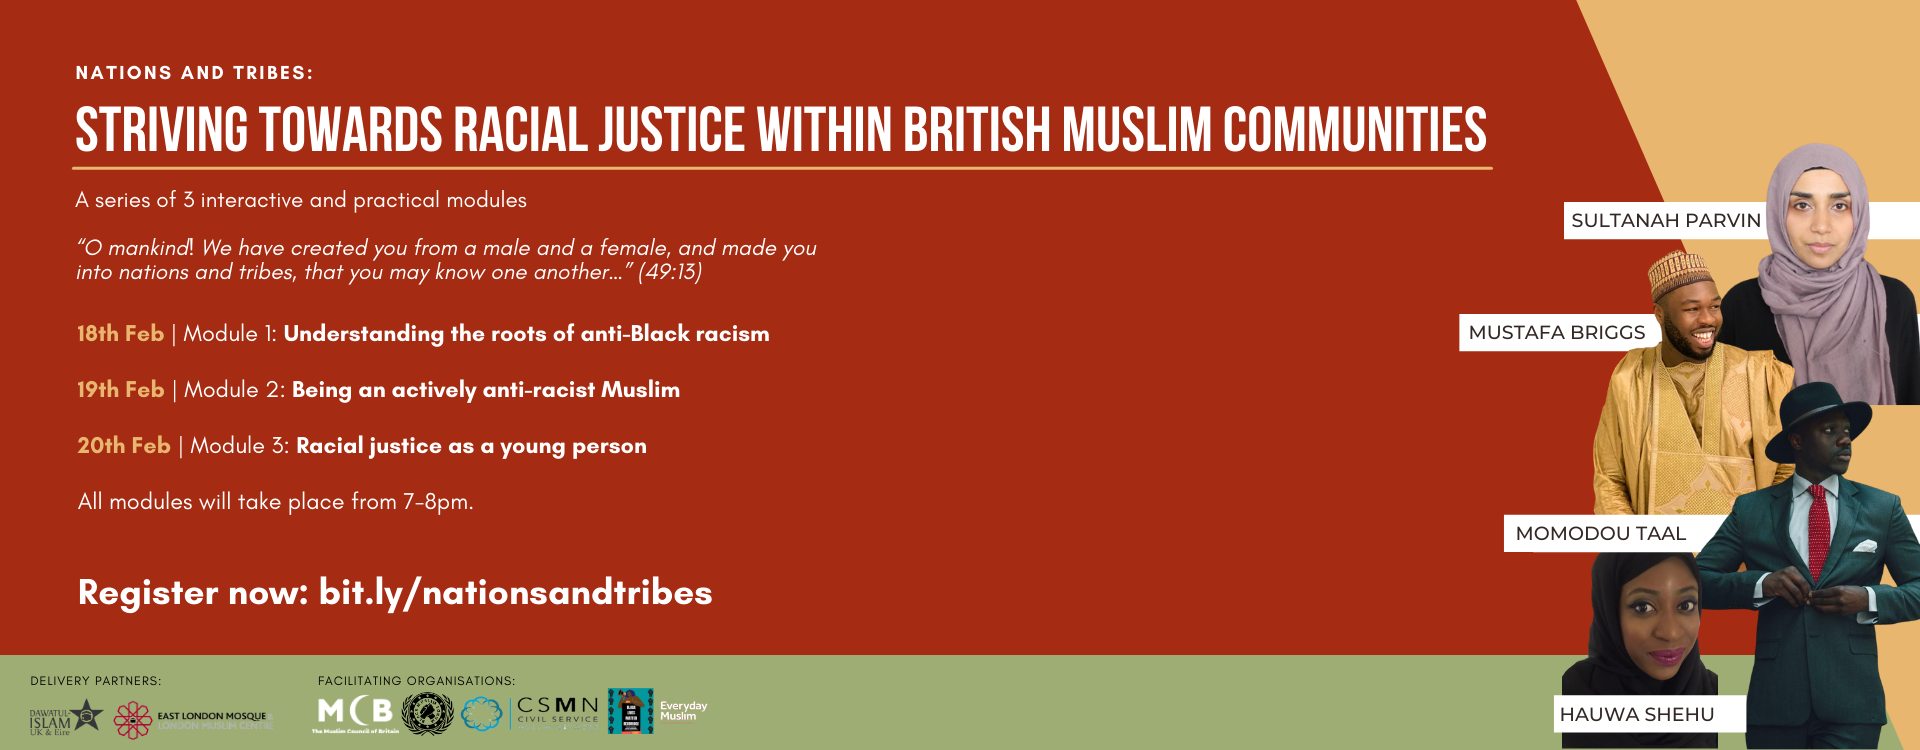 Nations and Tribes: Striving Towards Racial Justice Within British Muslim Communities